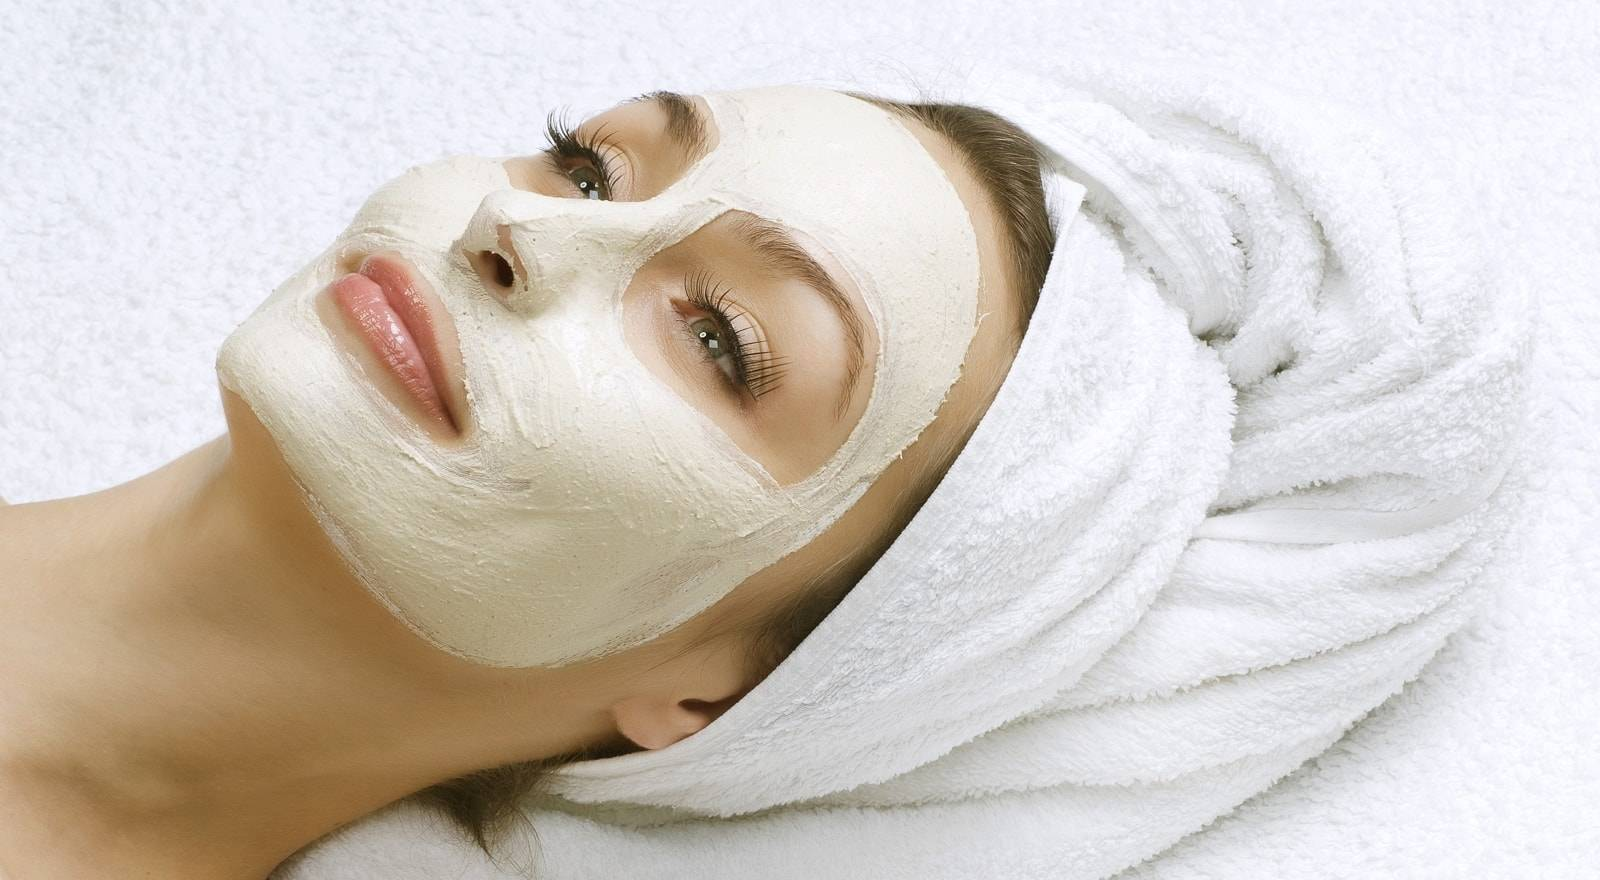 Spa Experience - Facial Care